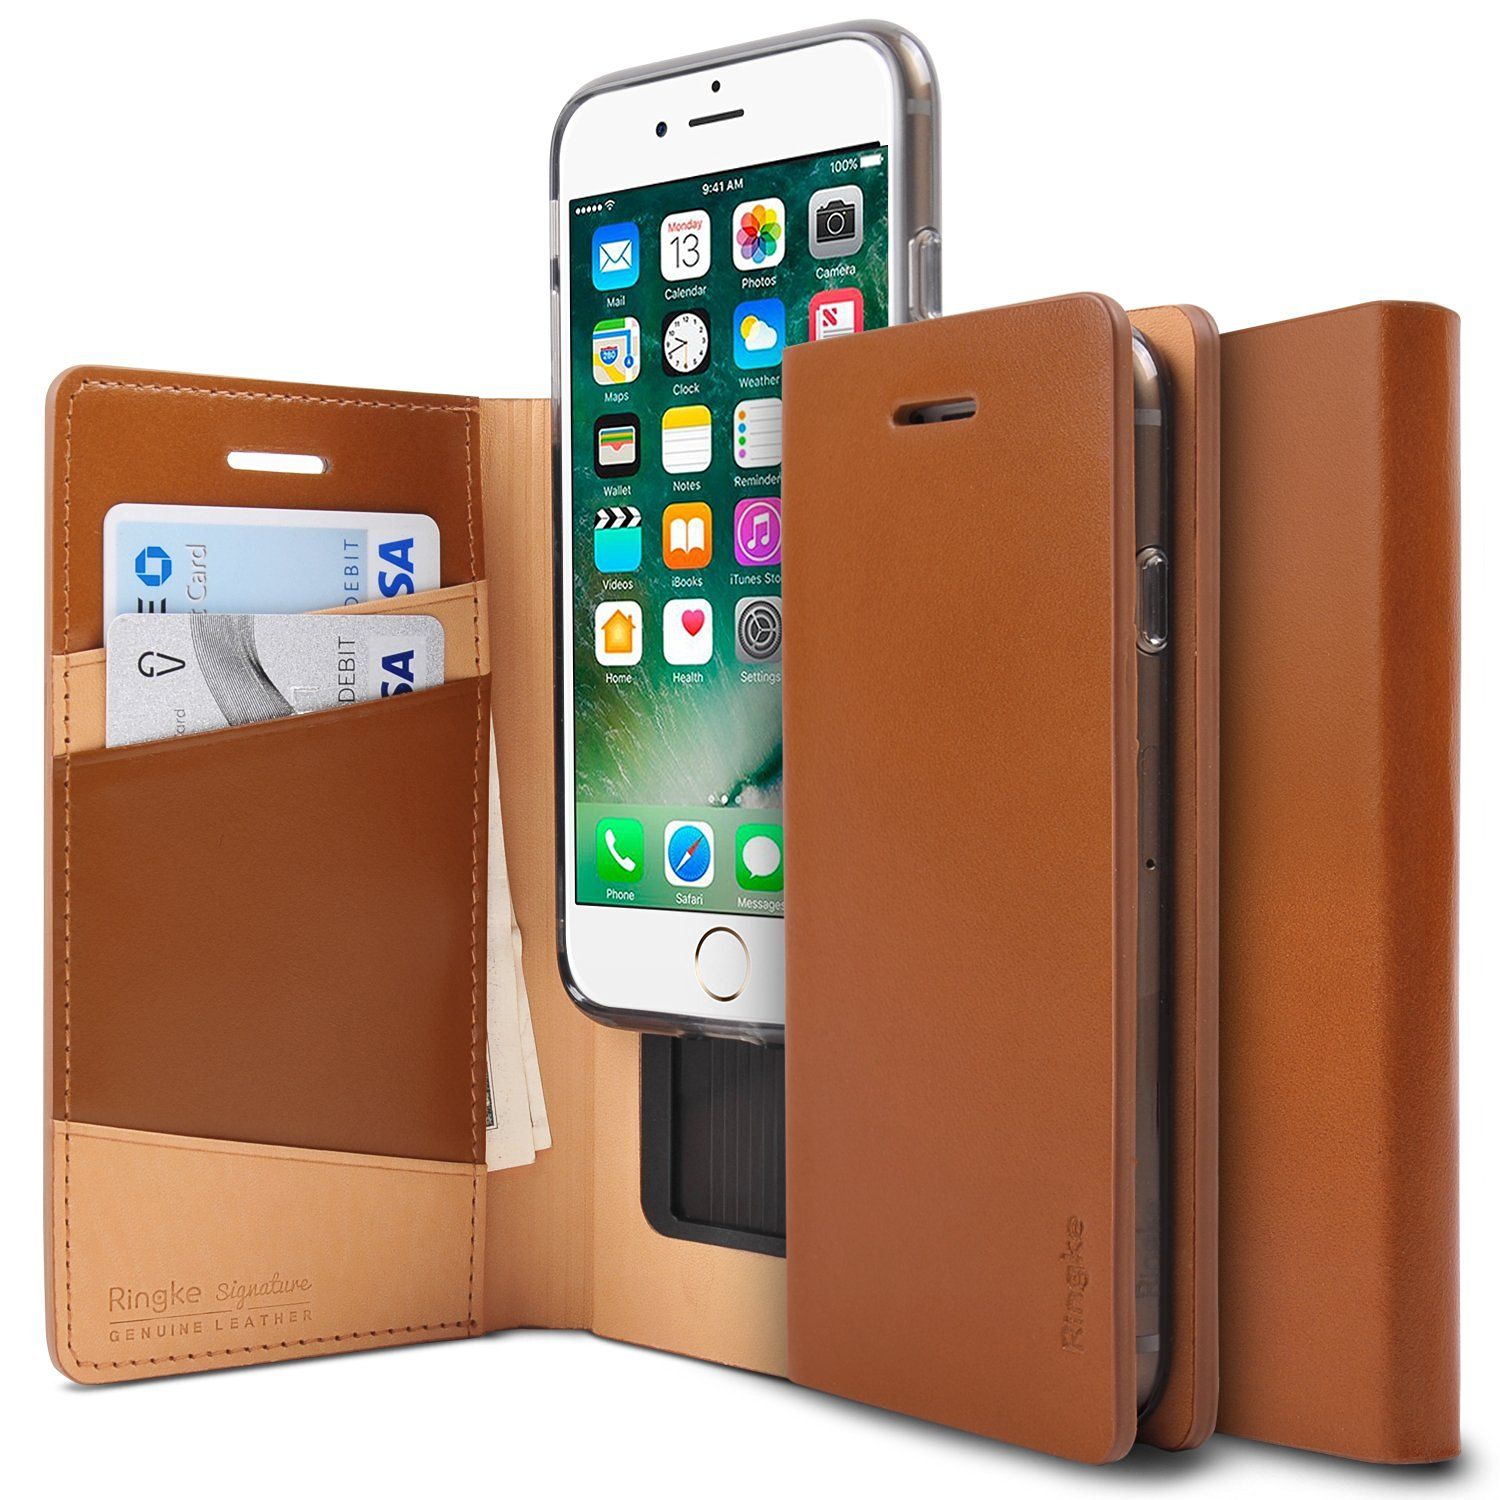 Ringke Signature iPhone 7 Leather Flip Case Cover Casing - Brown